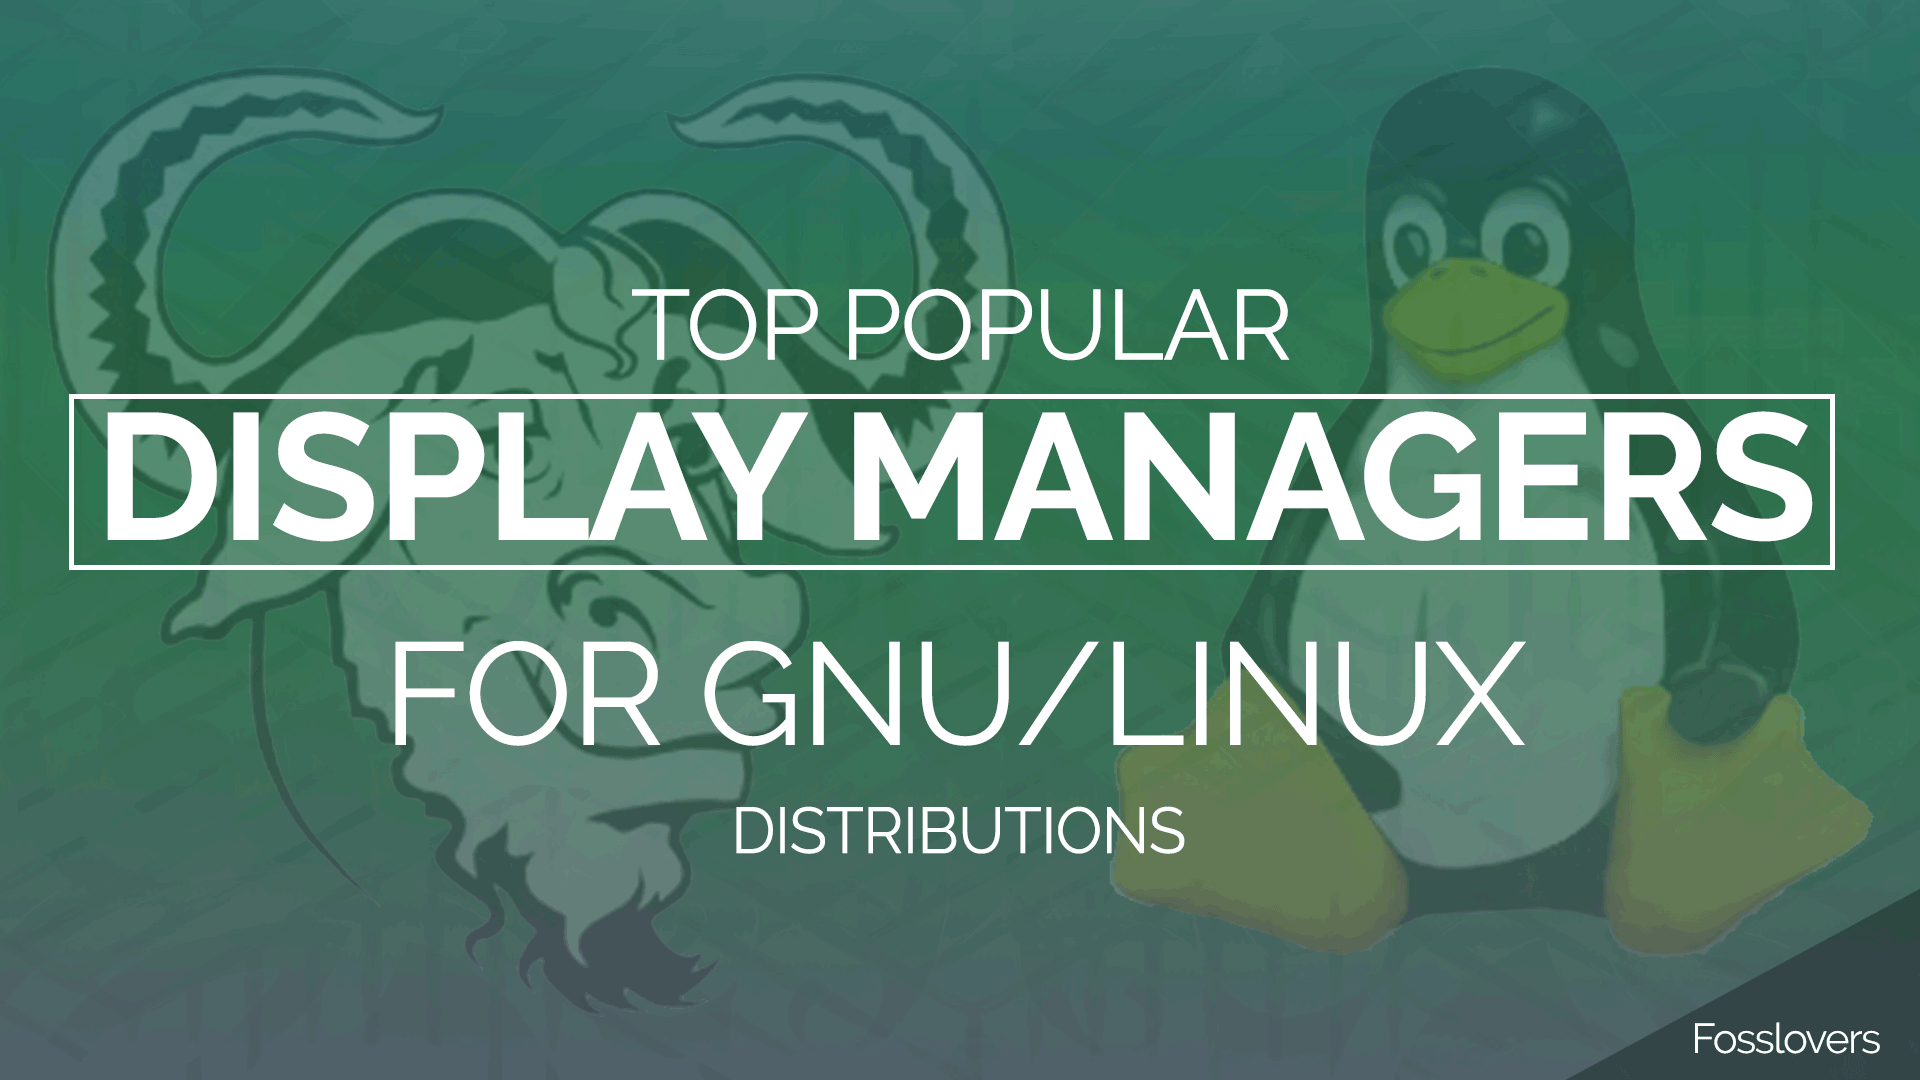 Top Popular Display managers for GNU/Linux Distributions